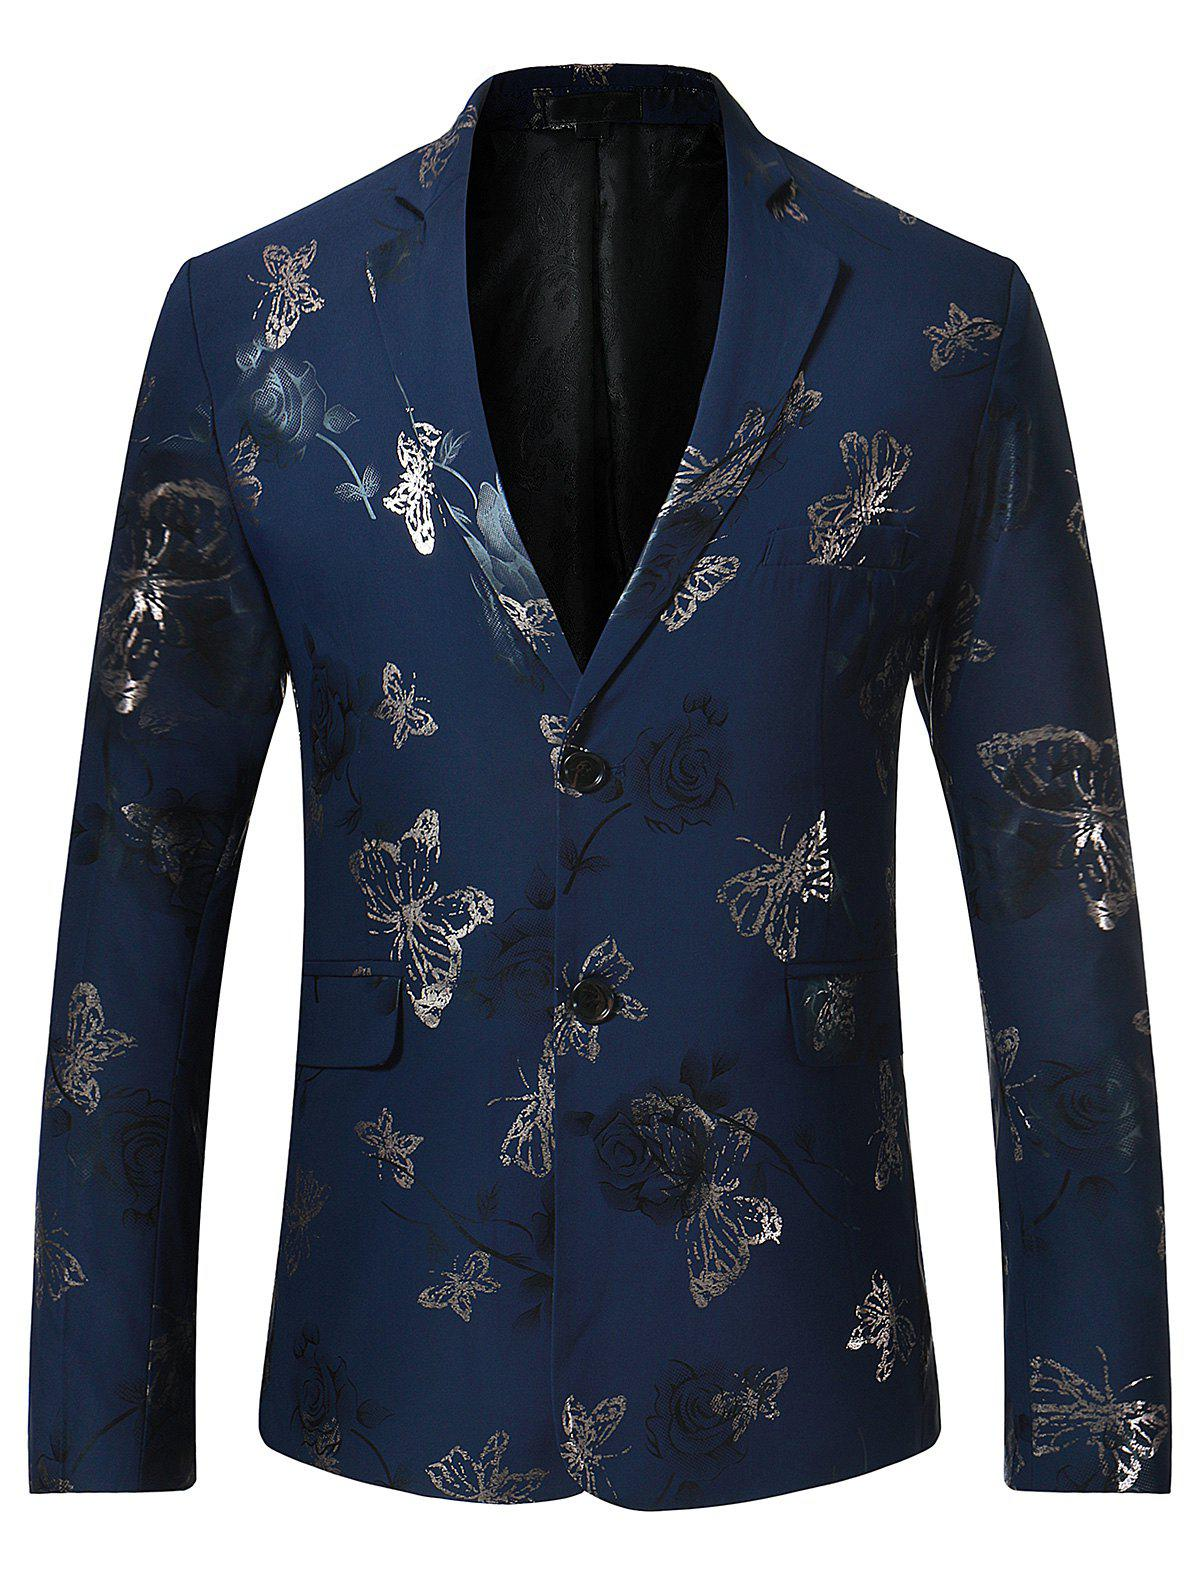 Lapel Metallic Butterfly Floral Printed Blazer - BLUE M